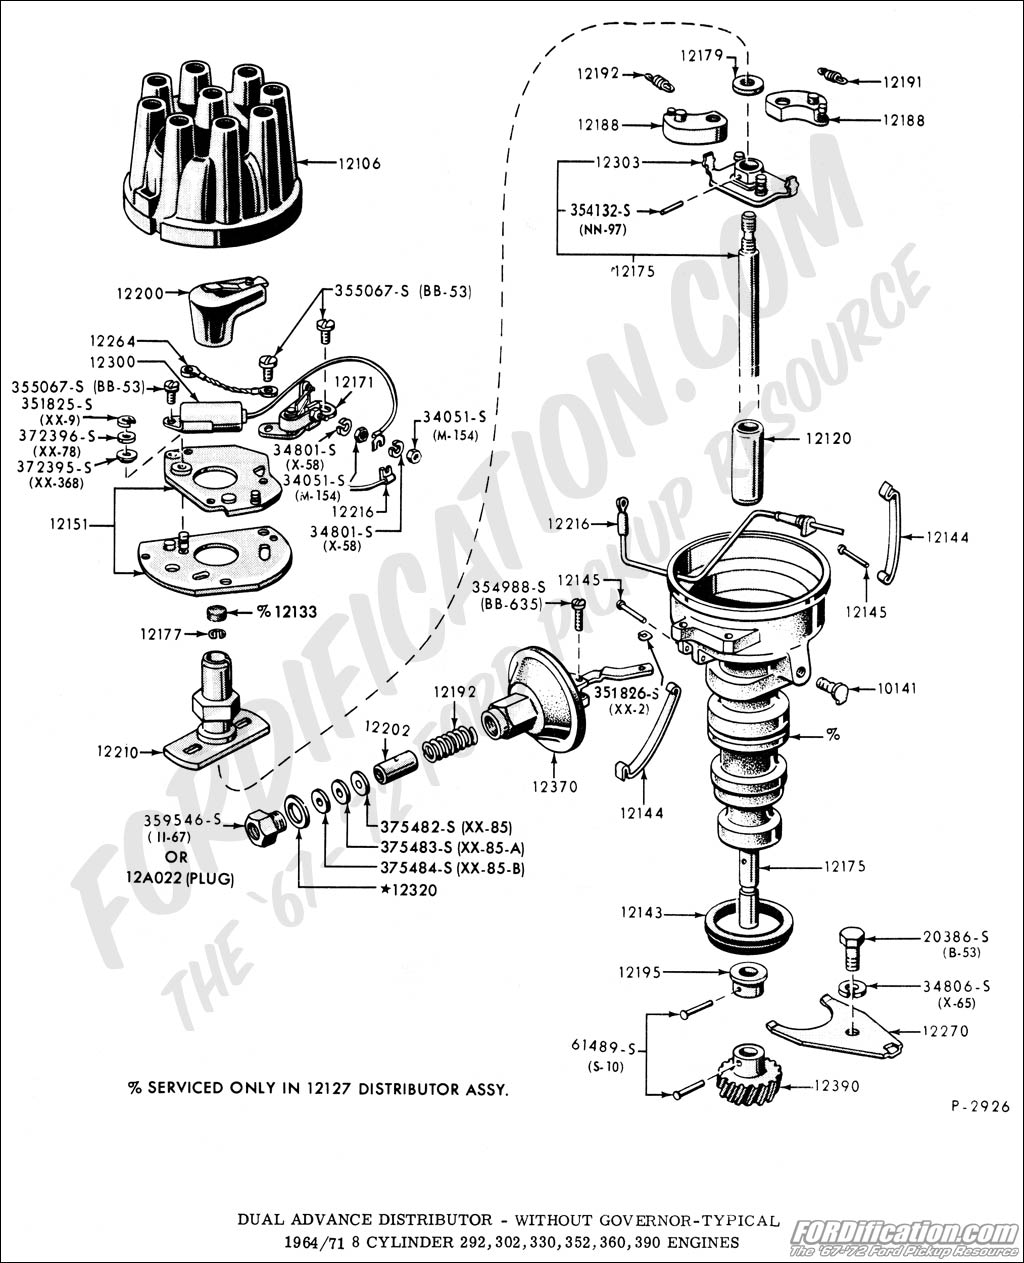 ford truck technical drawings and schematics section i 1967 Mustang Alternator Wiring  1974 Ford Alternator Wiring Diagram Diesel Ford Truck Alternator Diagram Yamaha Motorcycle Wiring Diagrams